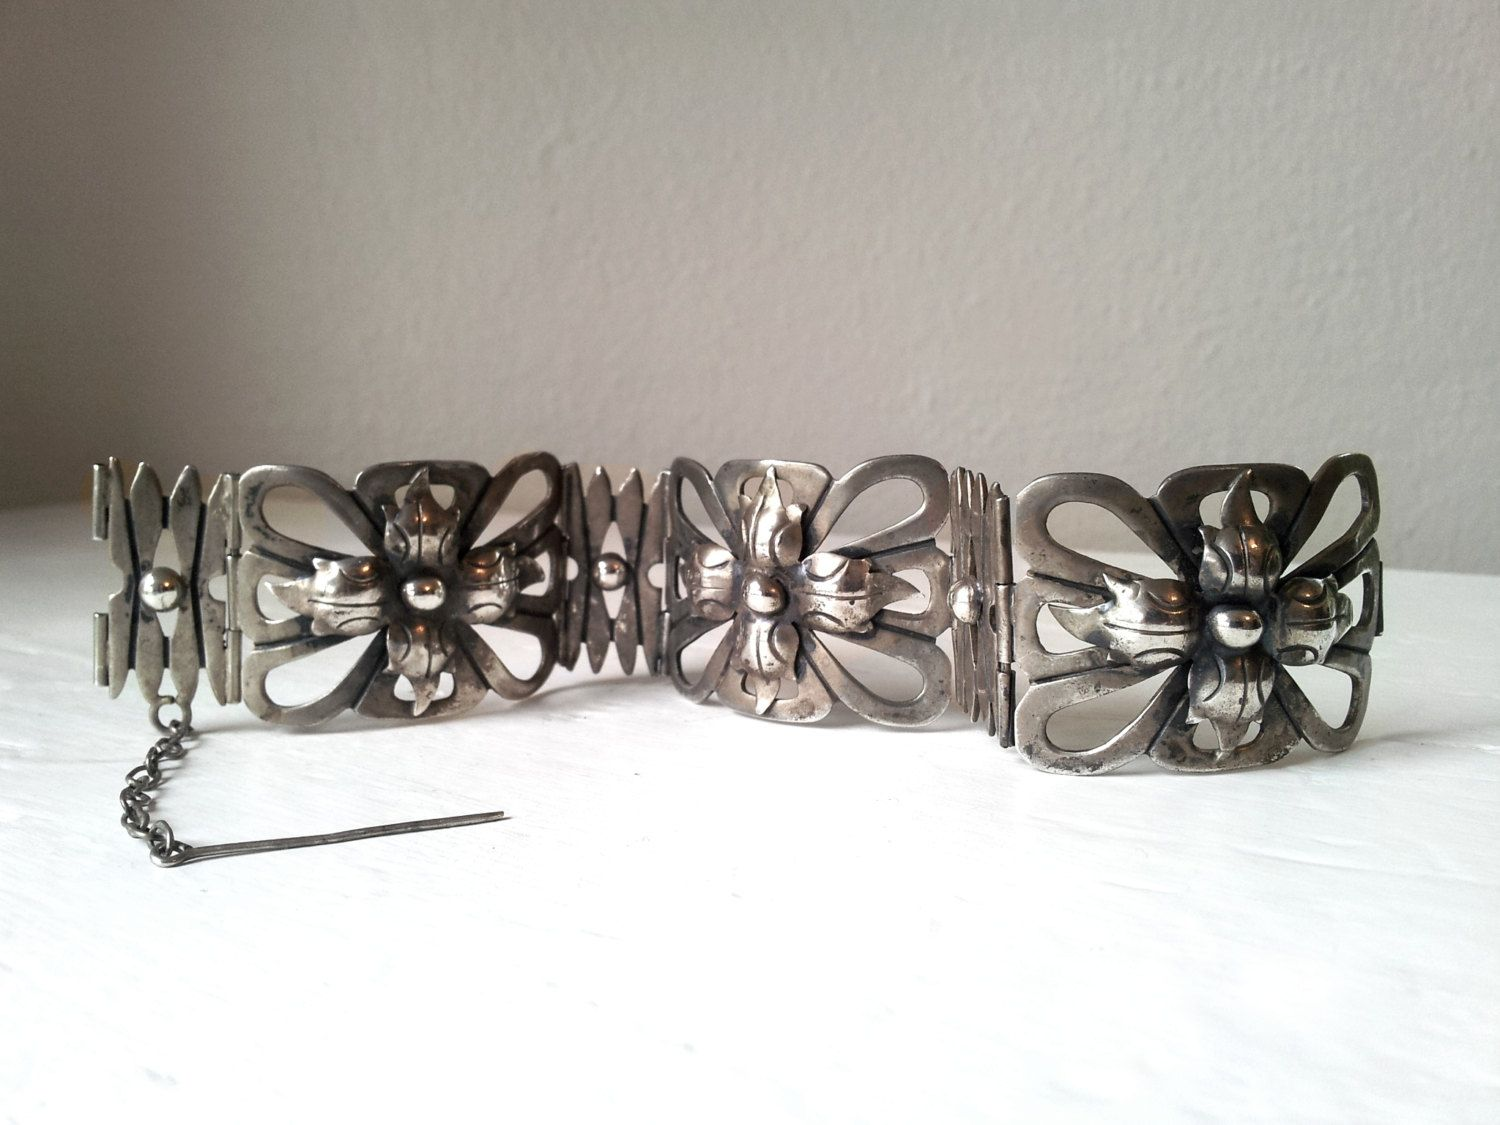 Early Taxco1930's 980 Silver Link Hinged Panel Bracelet with Geometric Floral Design - Estate Item by KAblackburn on Etsy